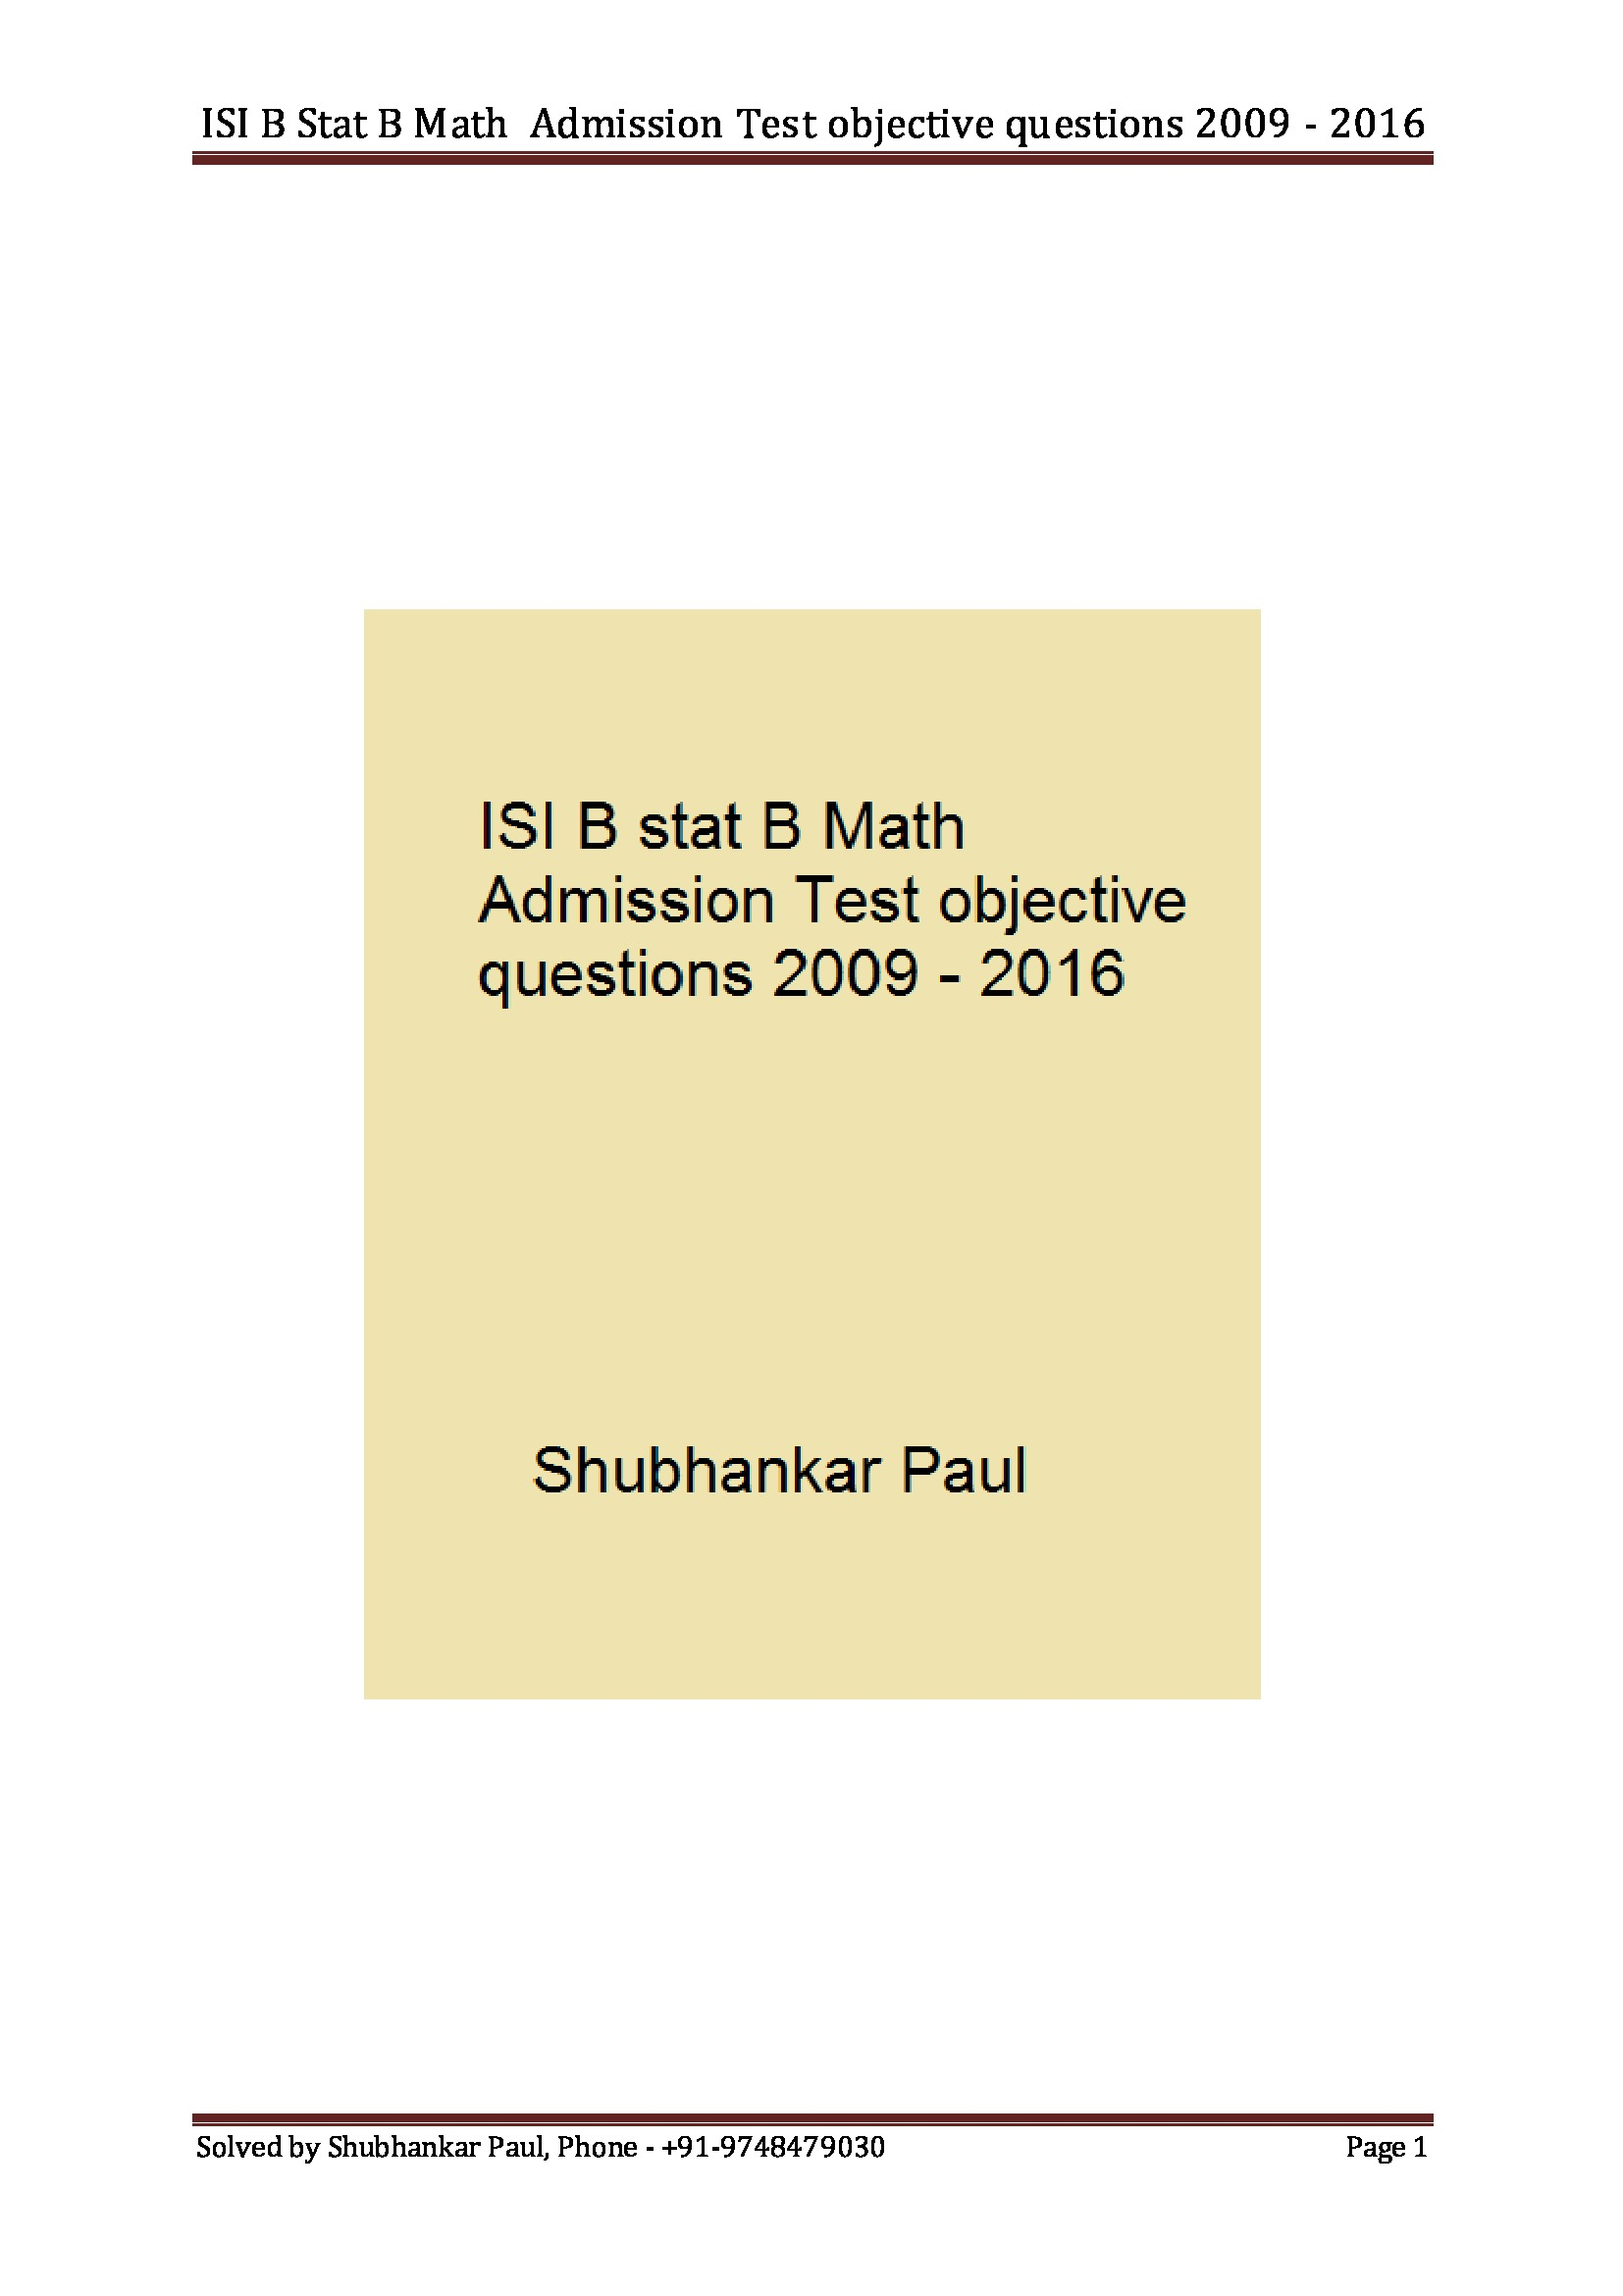 ISI B Stat B Math Admission Test objective questions 2009